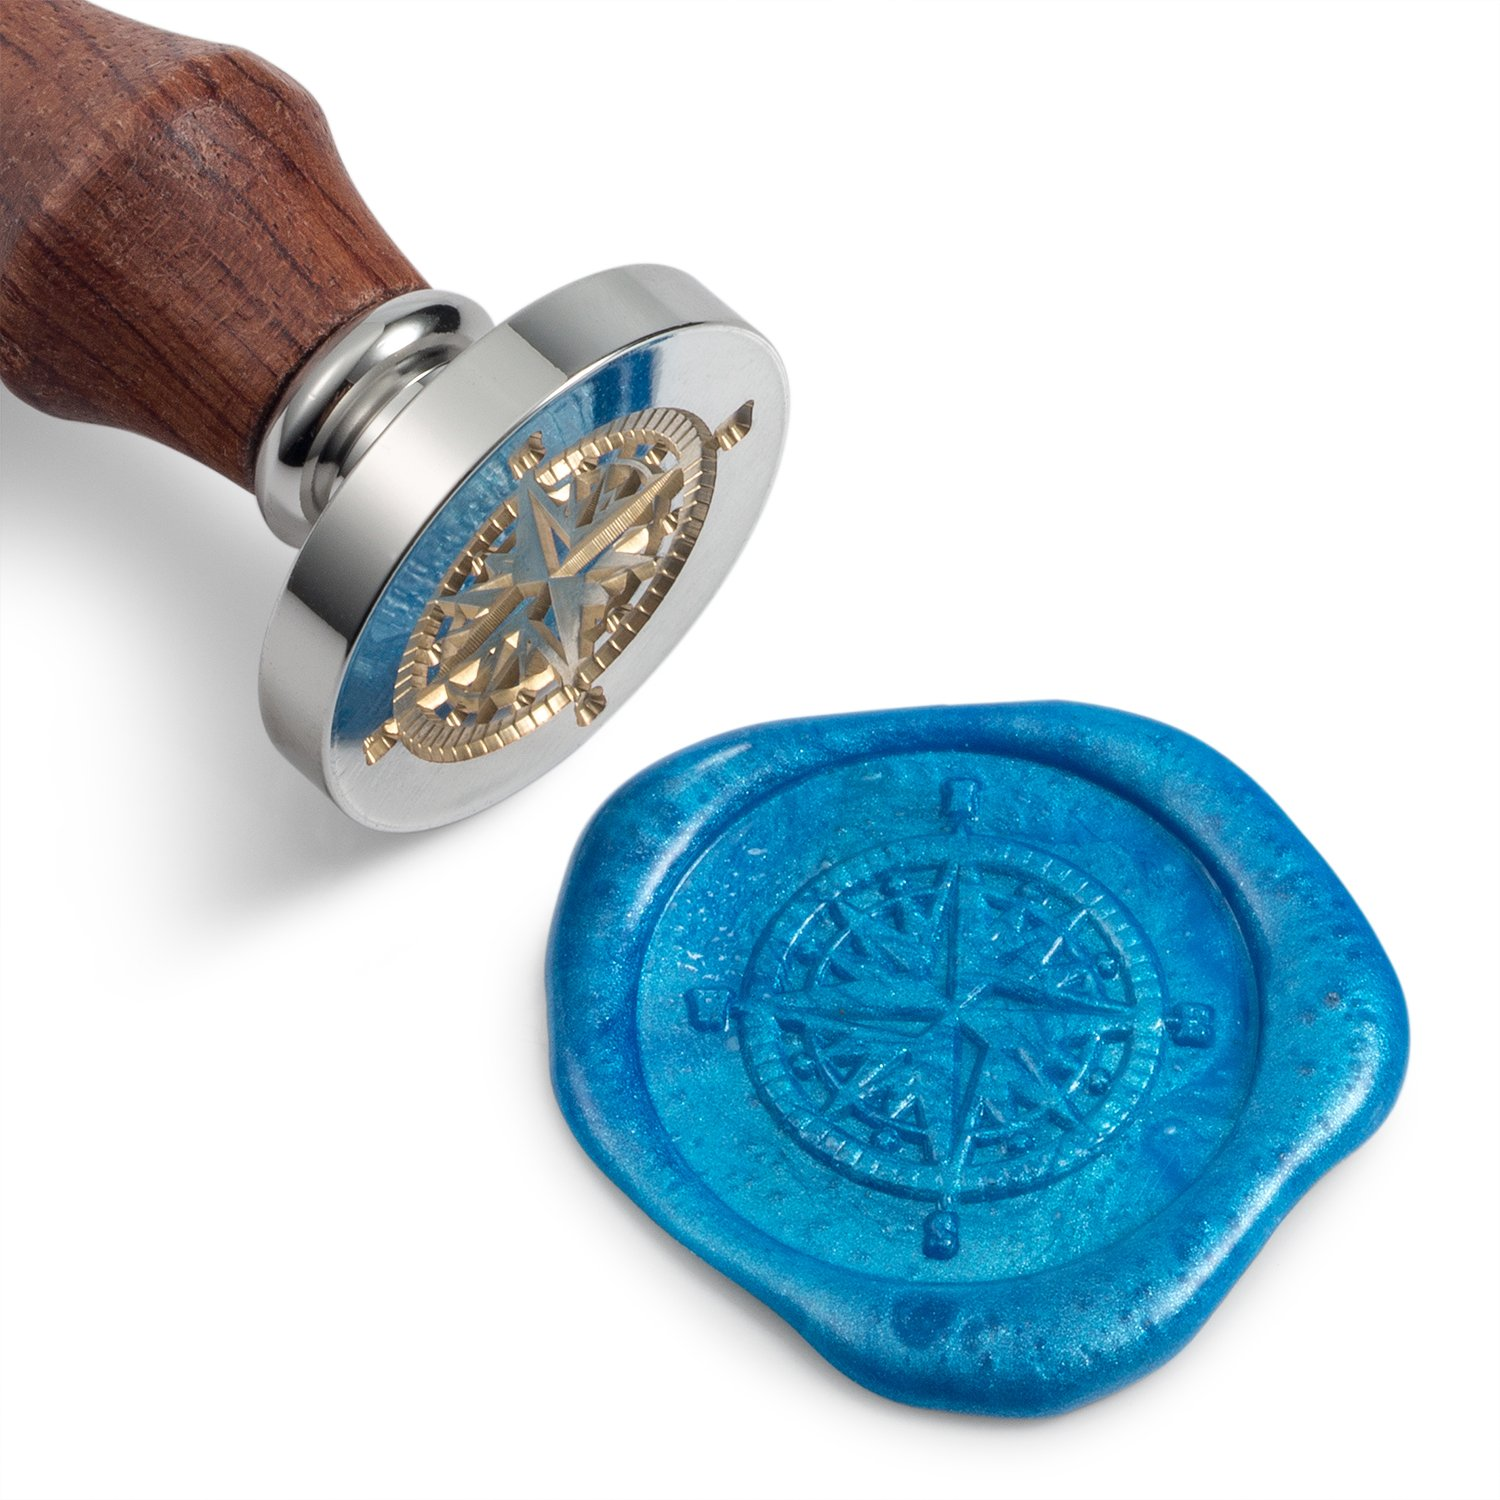 Mceal Wax Seal Stamp, Silver Brass Head with Wooden Handle, Compass